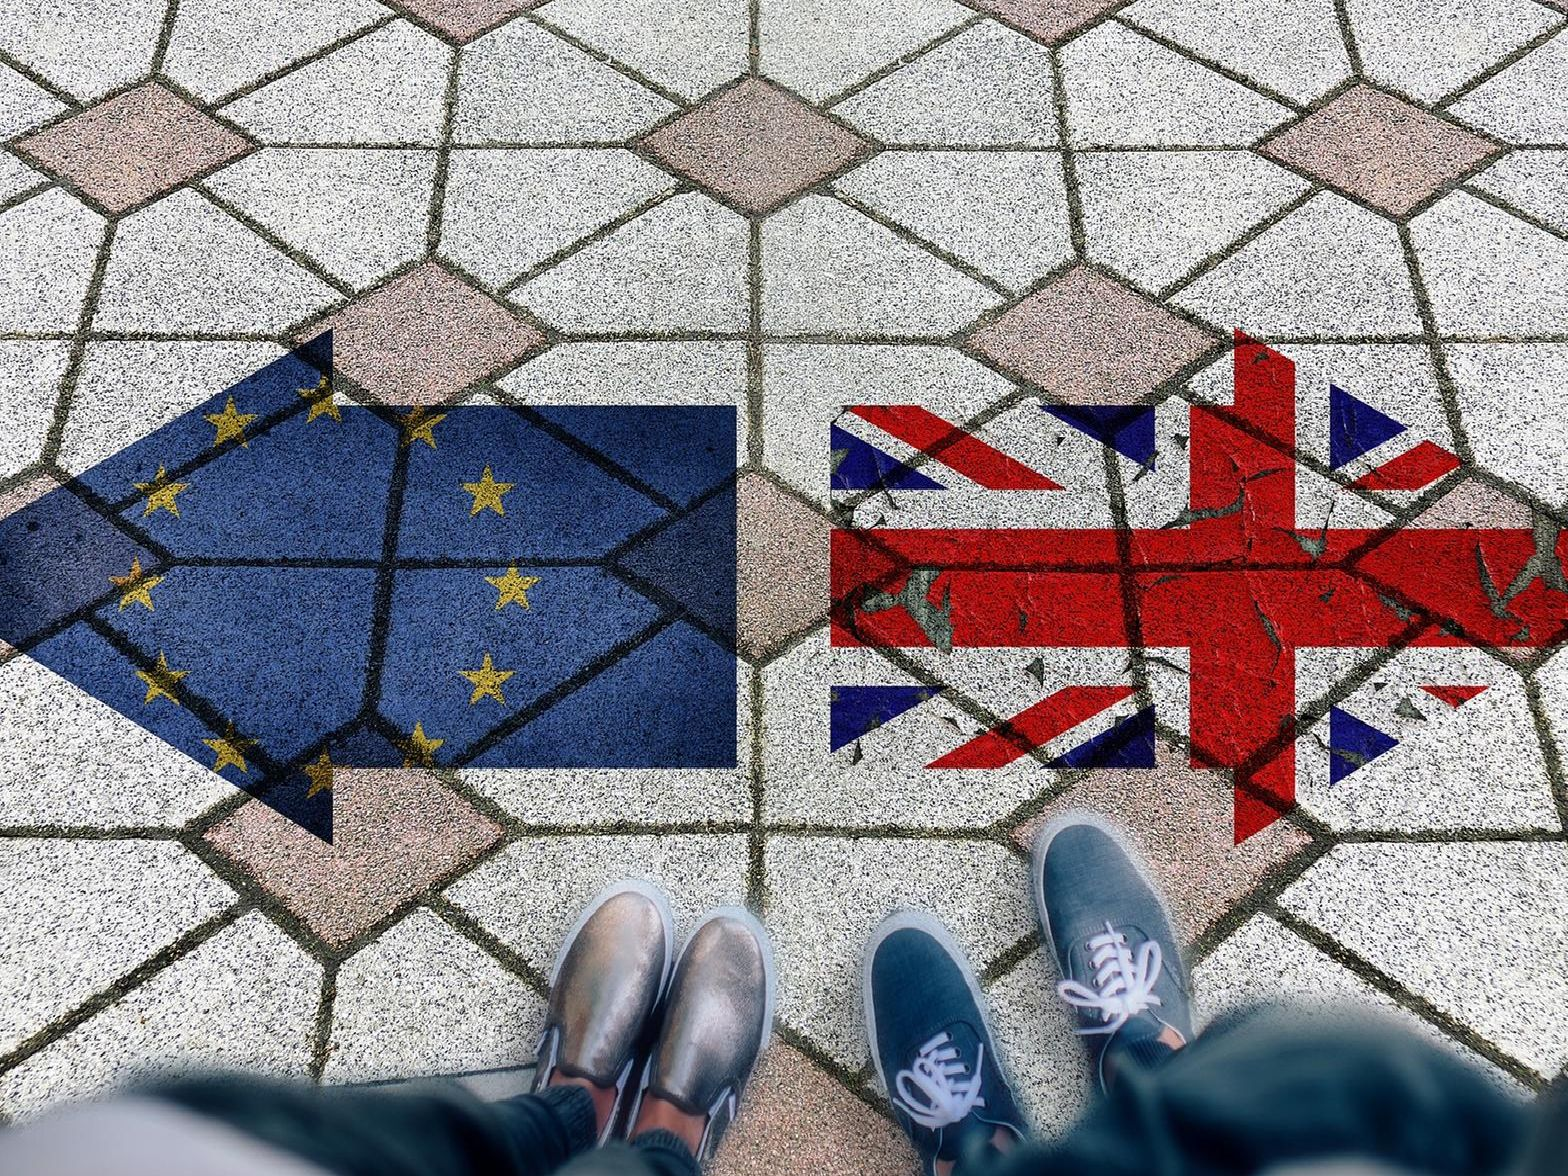 More than 5.5 million signatures have been added to a petition designed to Revoke Article 50 which would subsequently put a stop to the United Kingdom leaving the E..U.